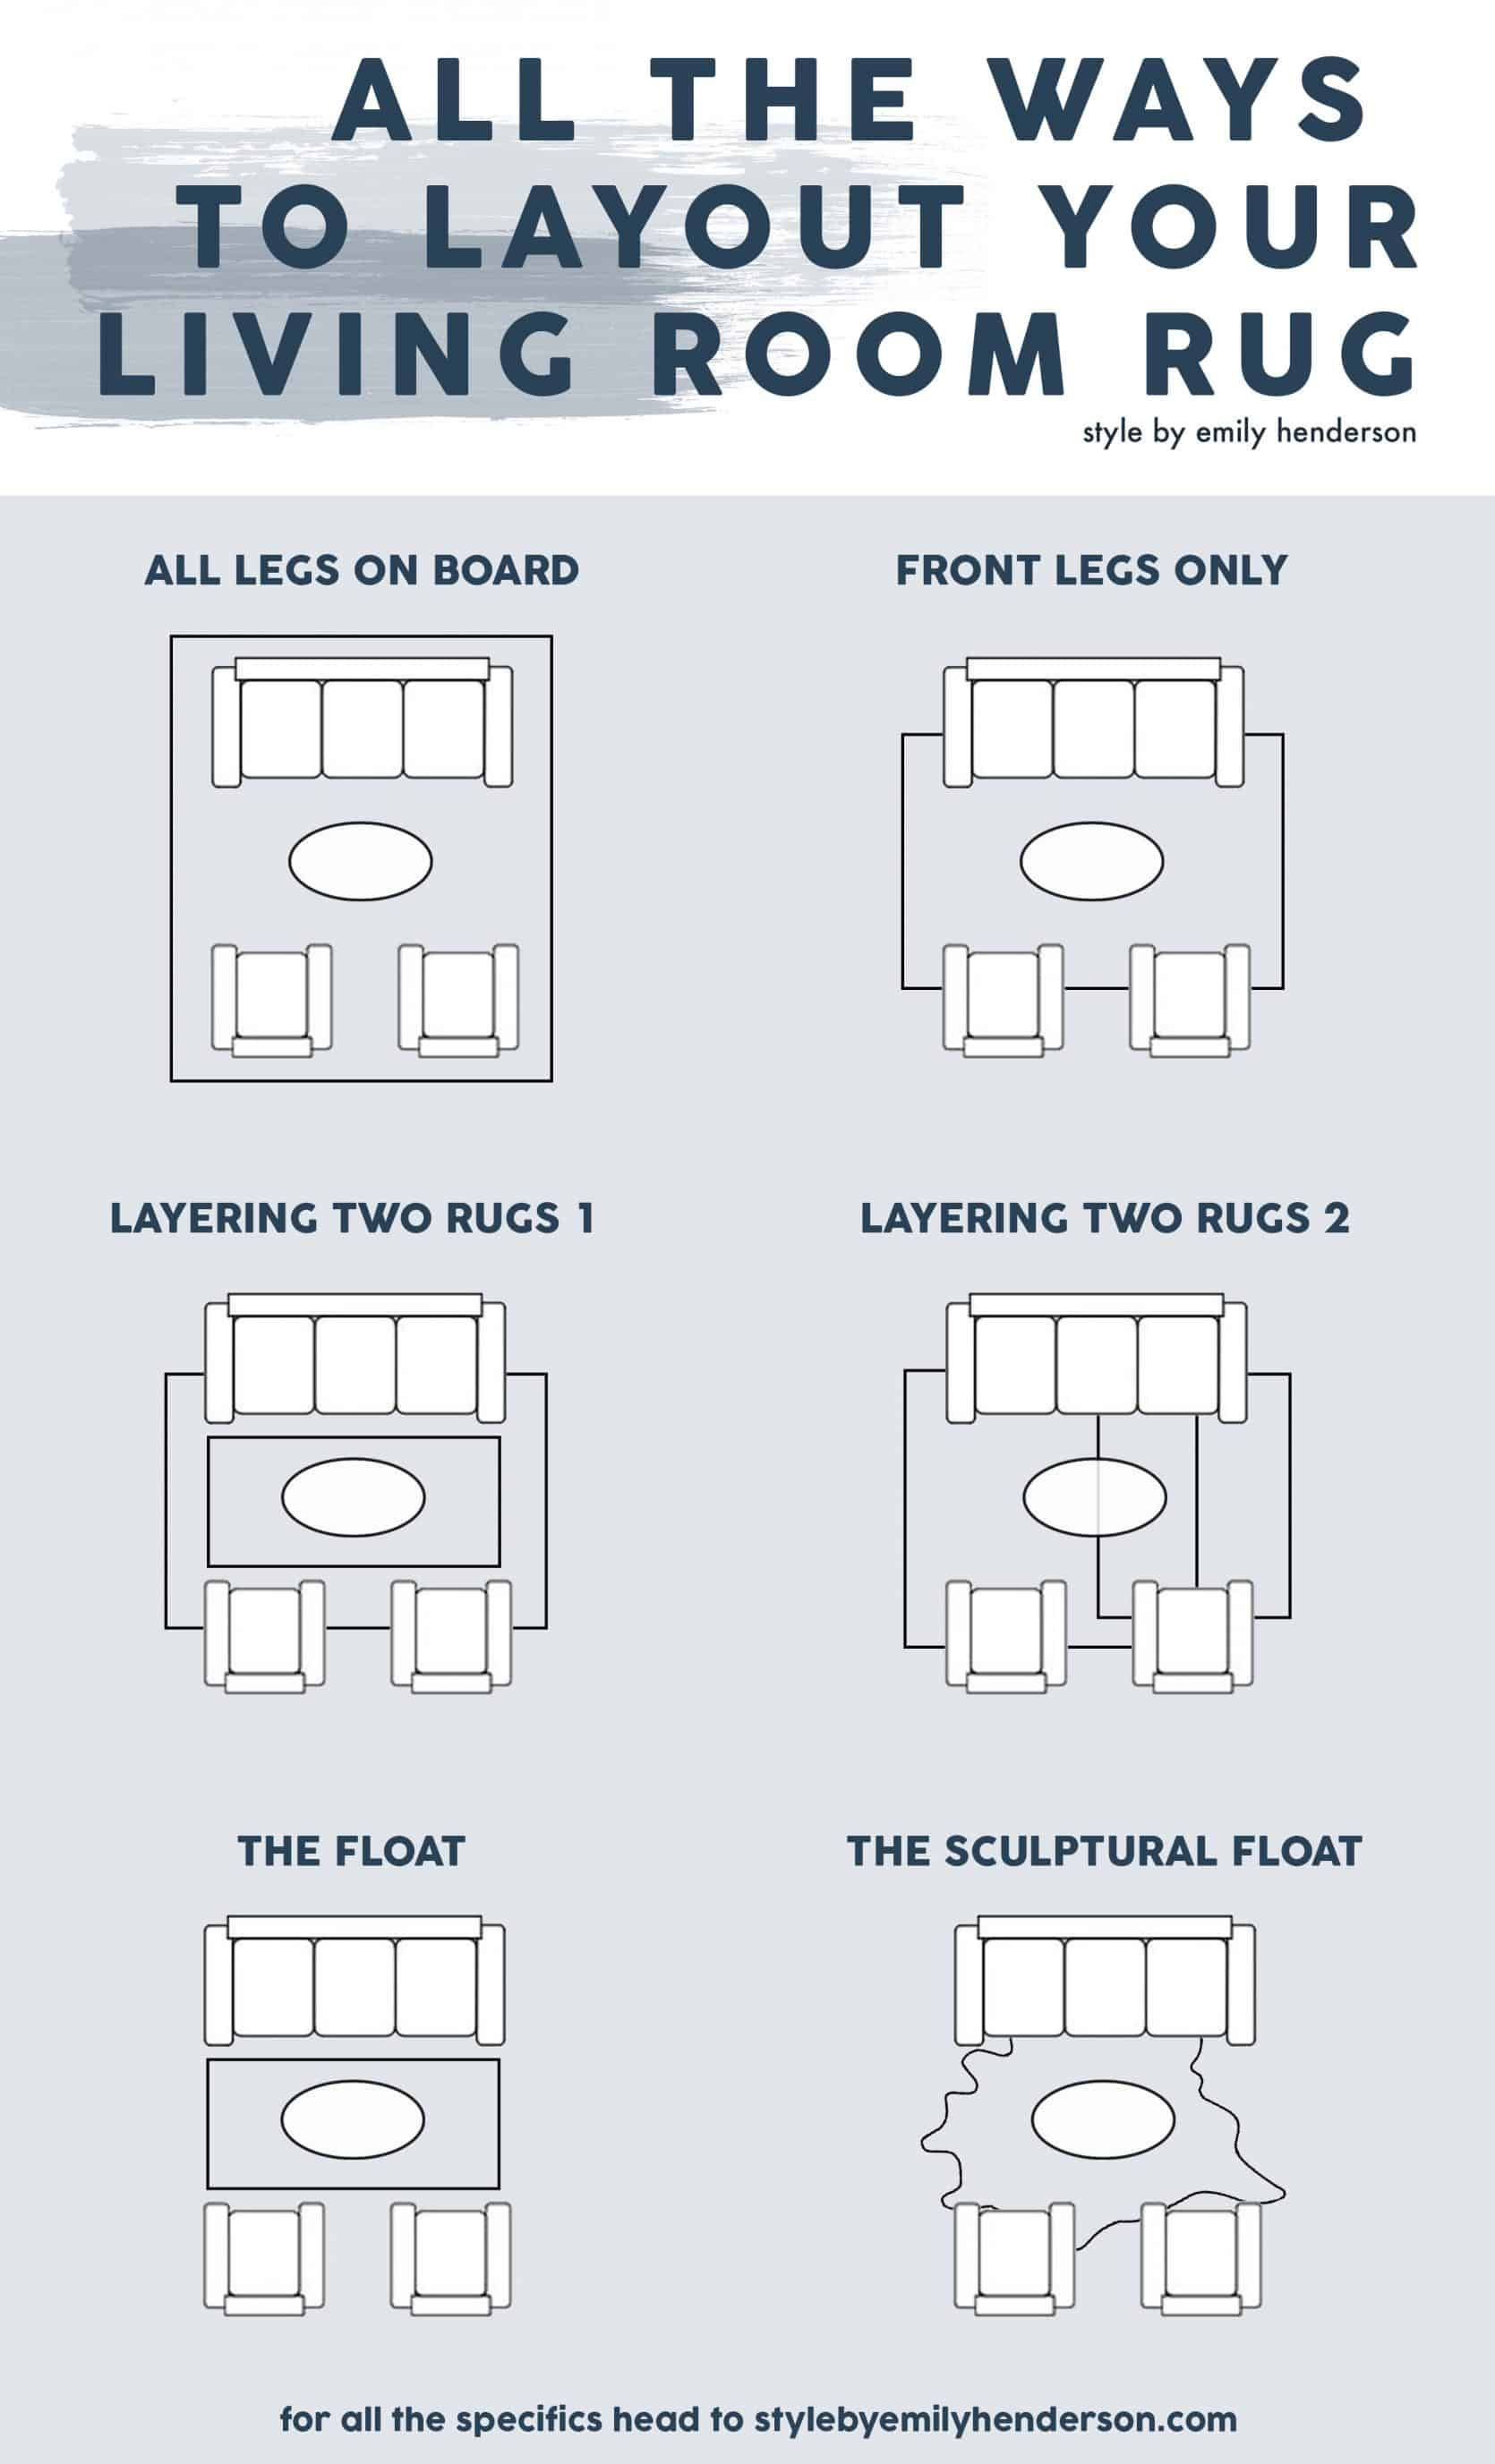 How To Choose The Right Rug Size For Your Living Room 5 Formulas Guaranteed To Work Emily Henderson In 2020 Living Room Rug Size Rugs In Living Room Living Room Rug Placement #right #rug #size #for #living #room